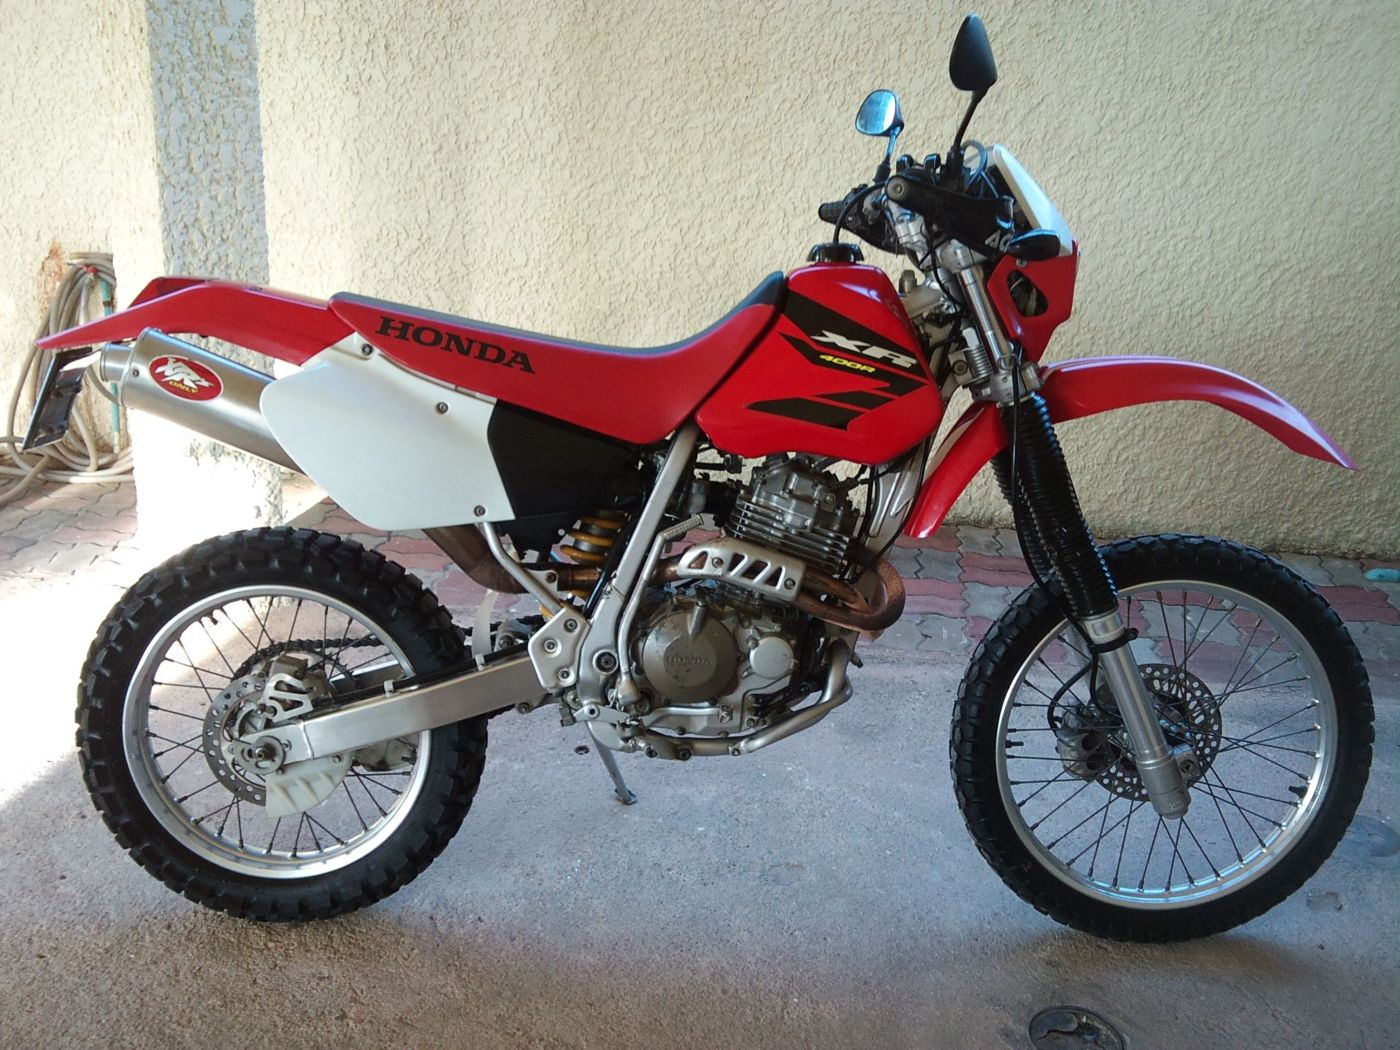 Honda XR 400 manual de reparación